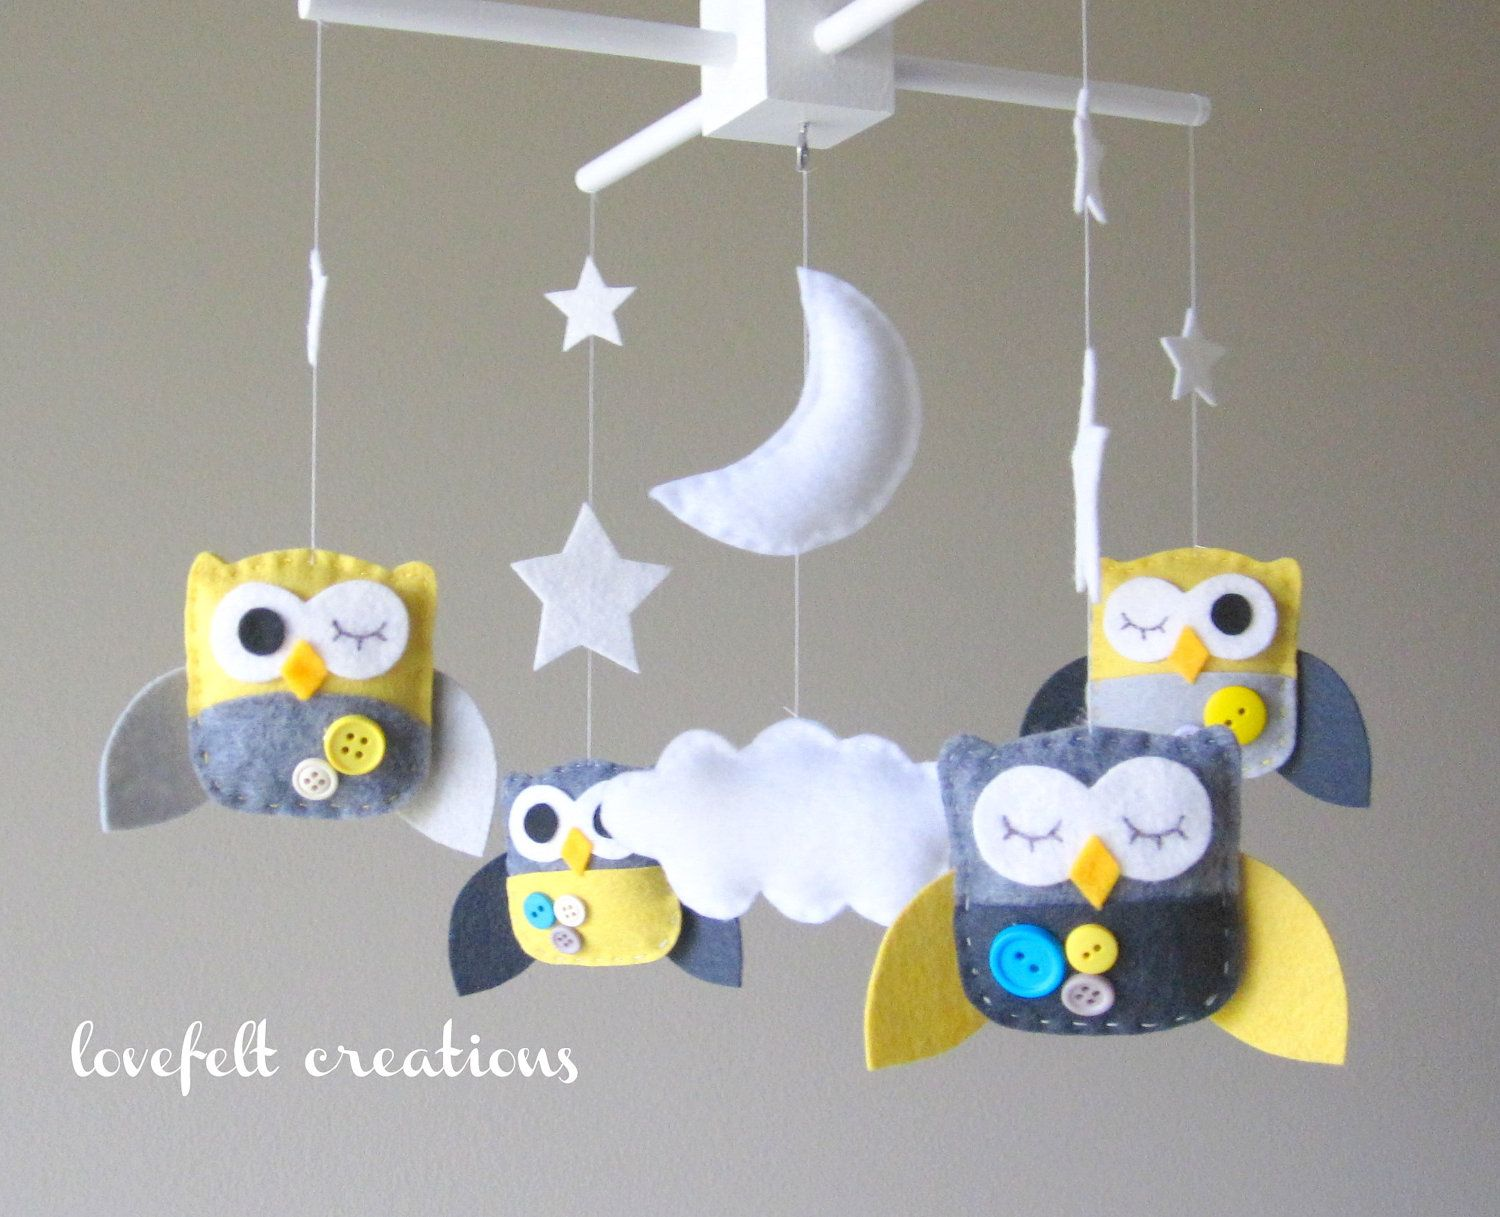 Crib mobiles for babies - Baby Crib Mobile I Think This Is Similar To What I Will Be Making For